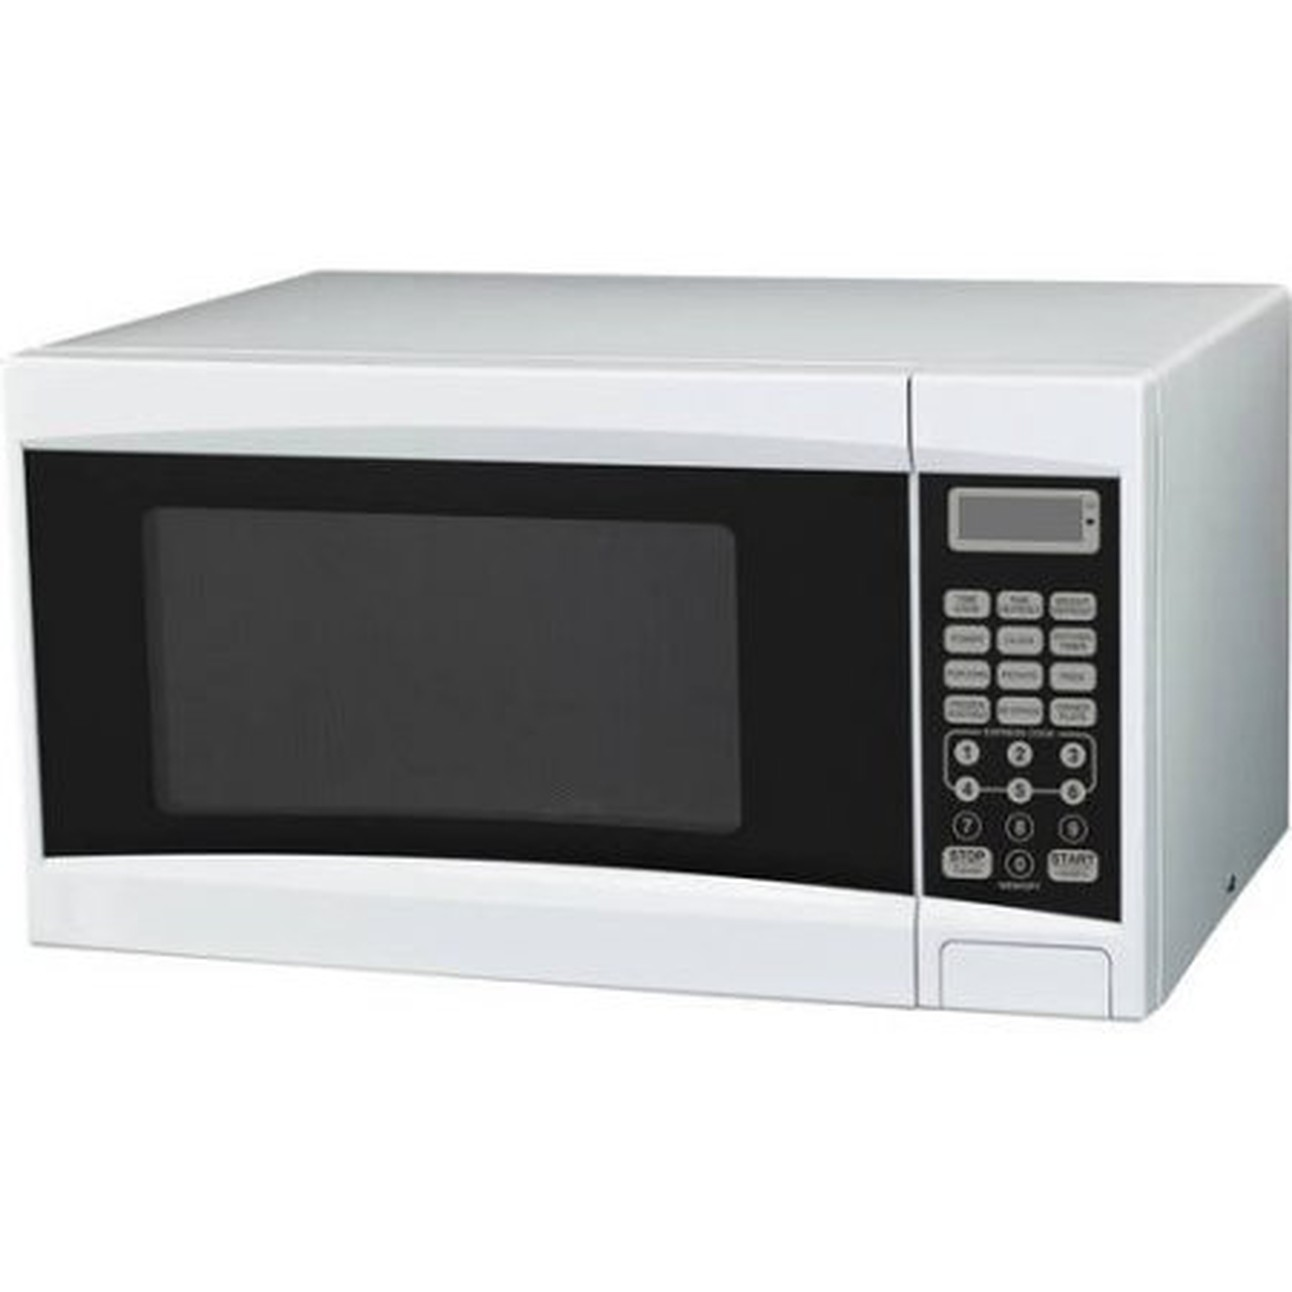 Microwave Assembly Diagram And Parts List For Emerson Microwaveparts